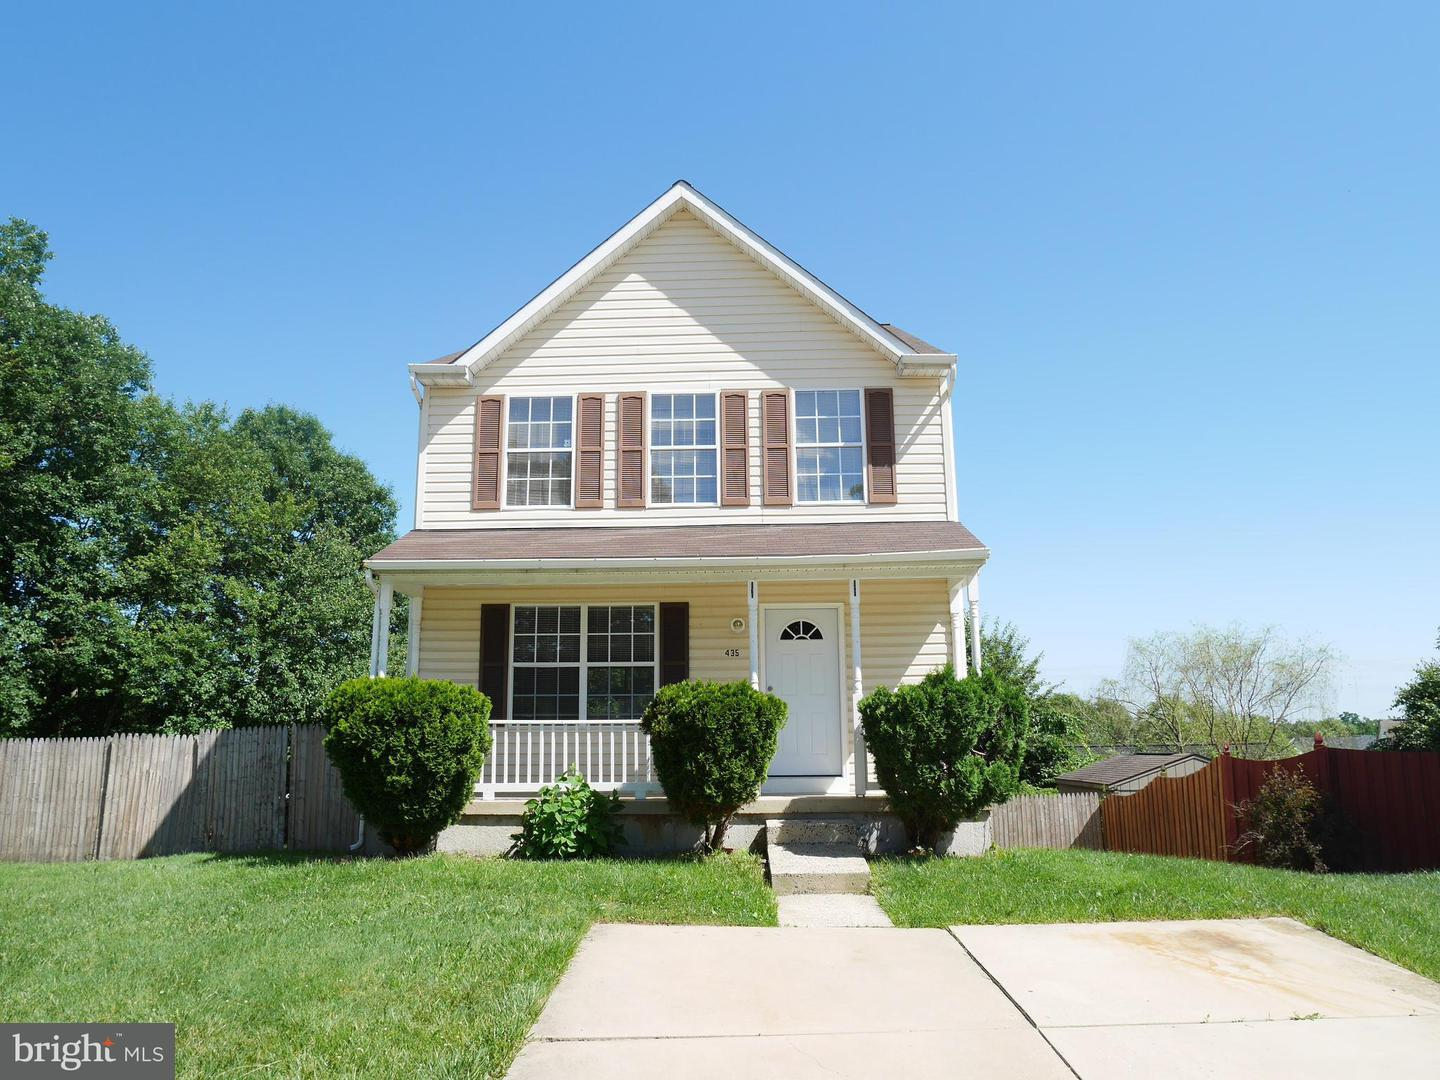 Other Residential for Rent at 435 Trimblefields Dr Edgewood, Maryland 21040 United States